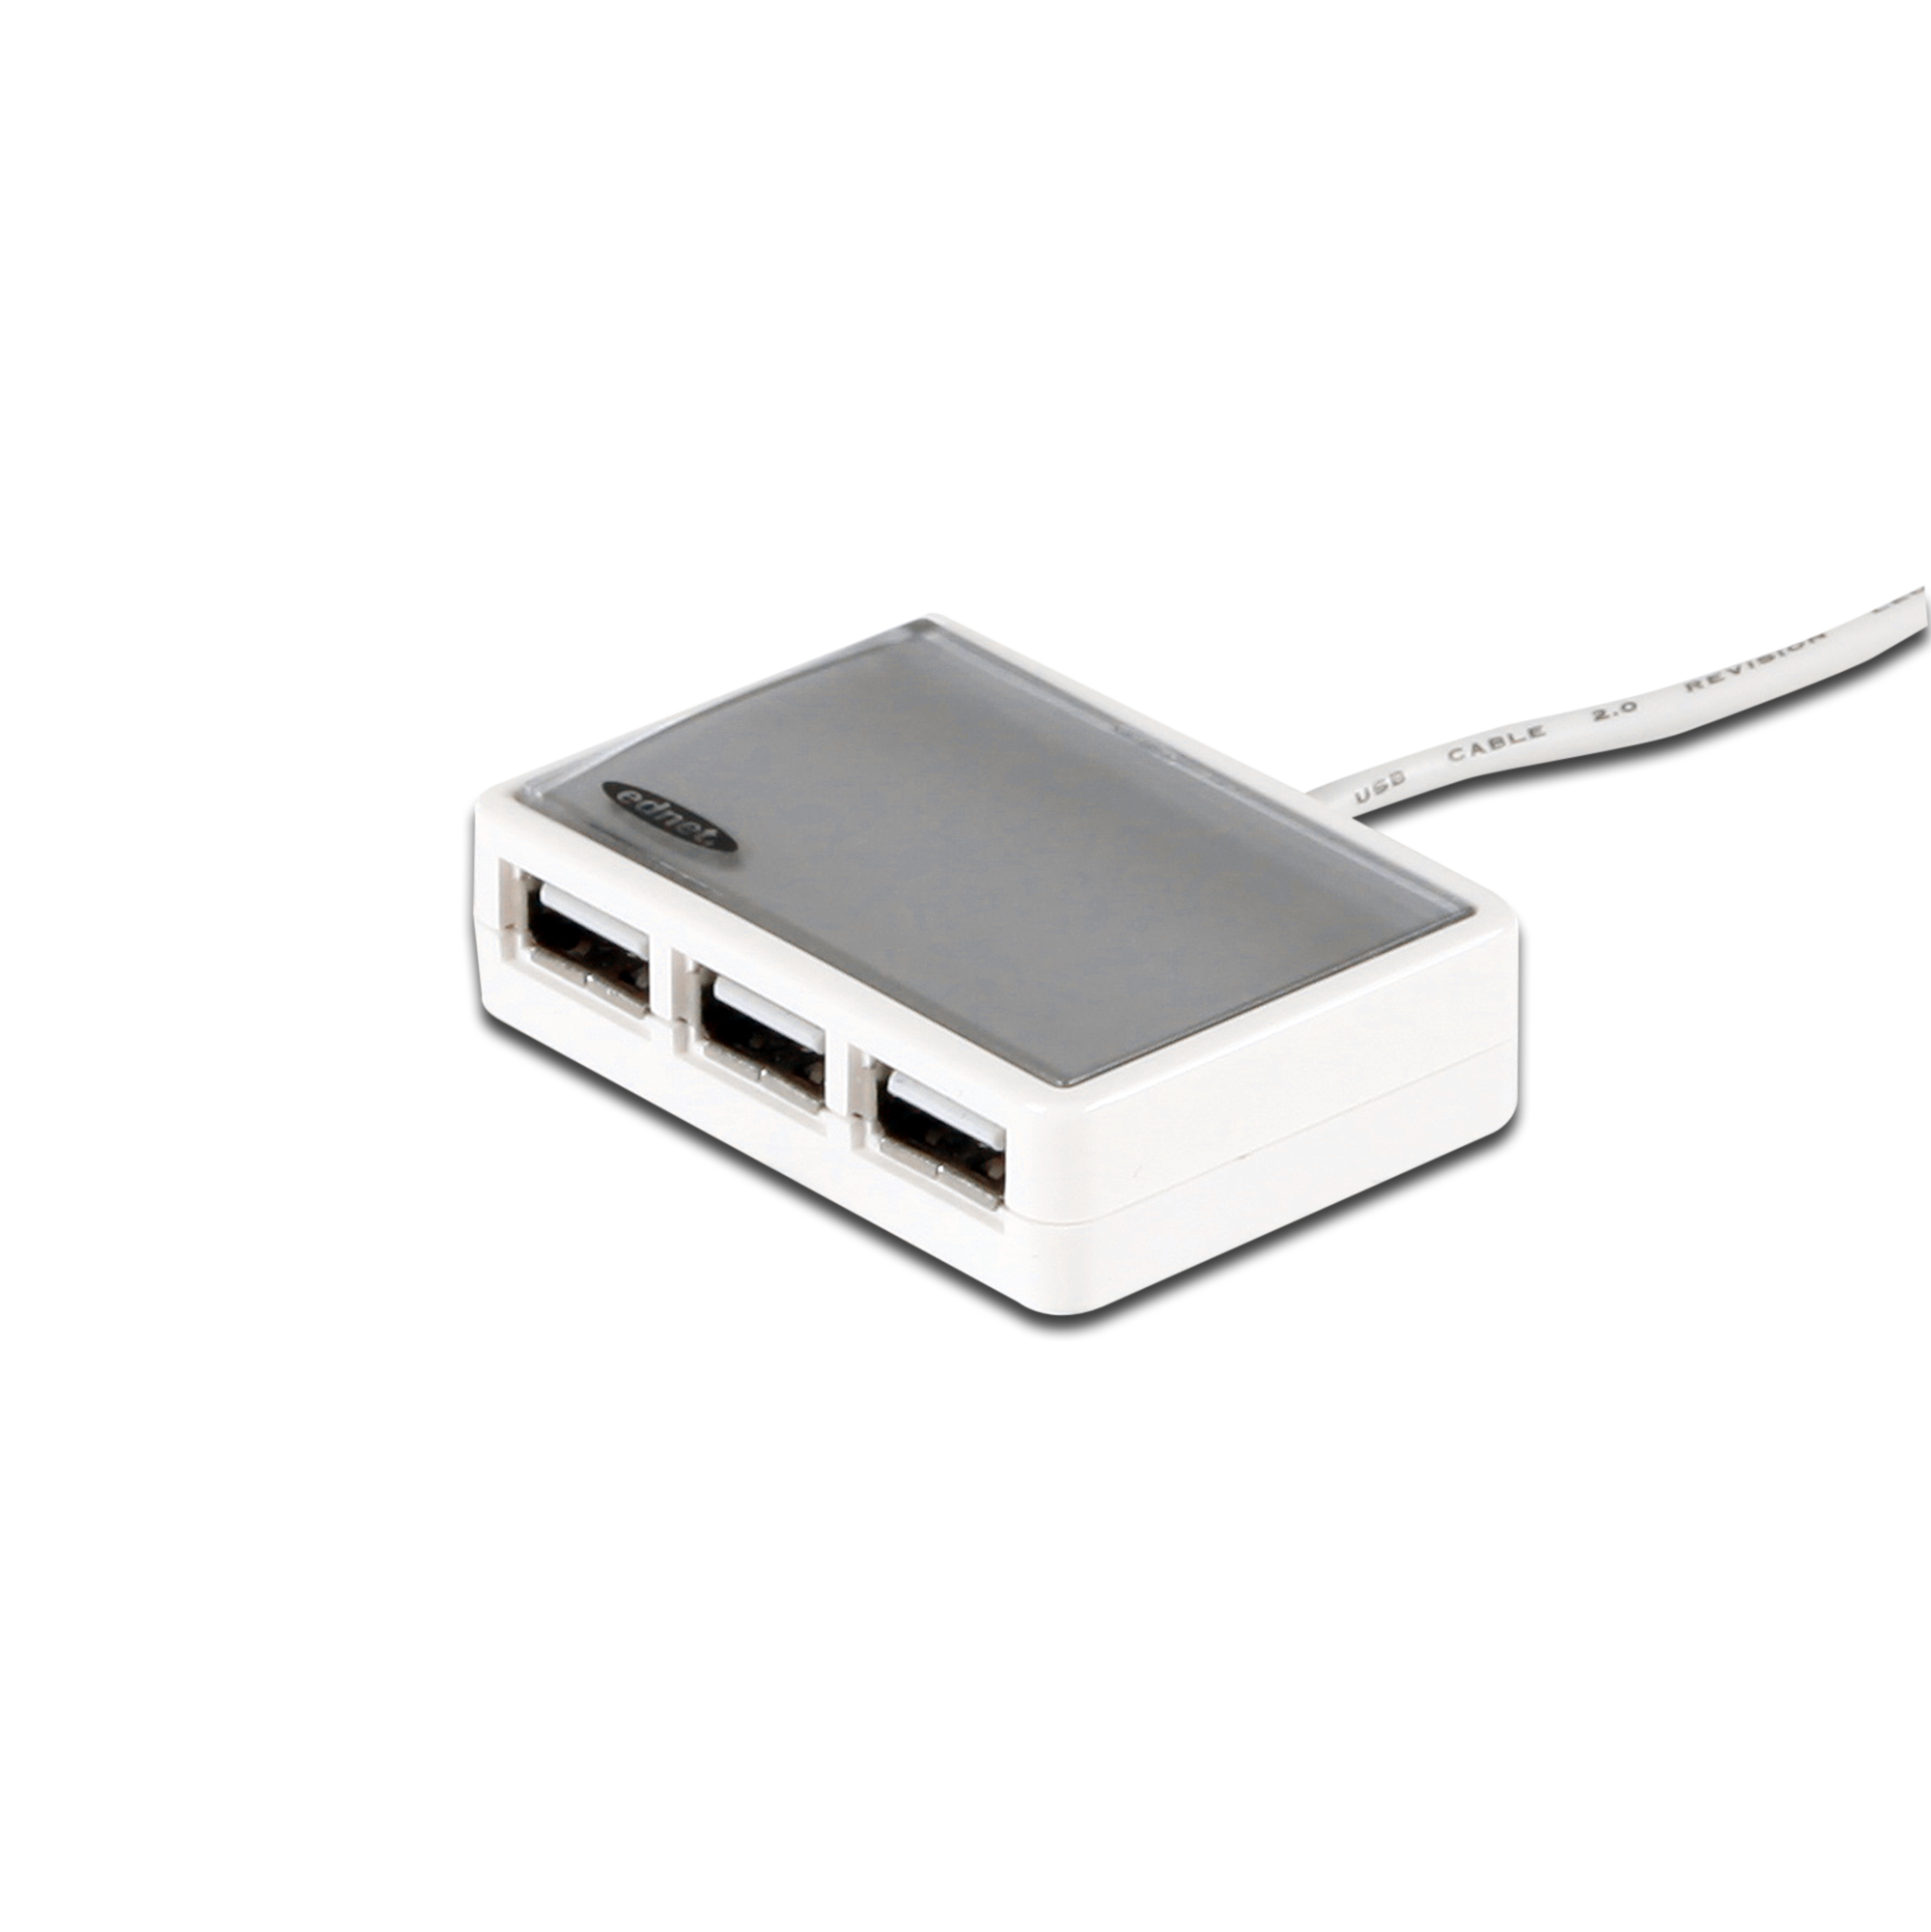 USB 2.0 HUB with 4 port and power supply